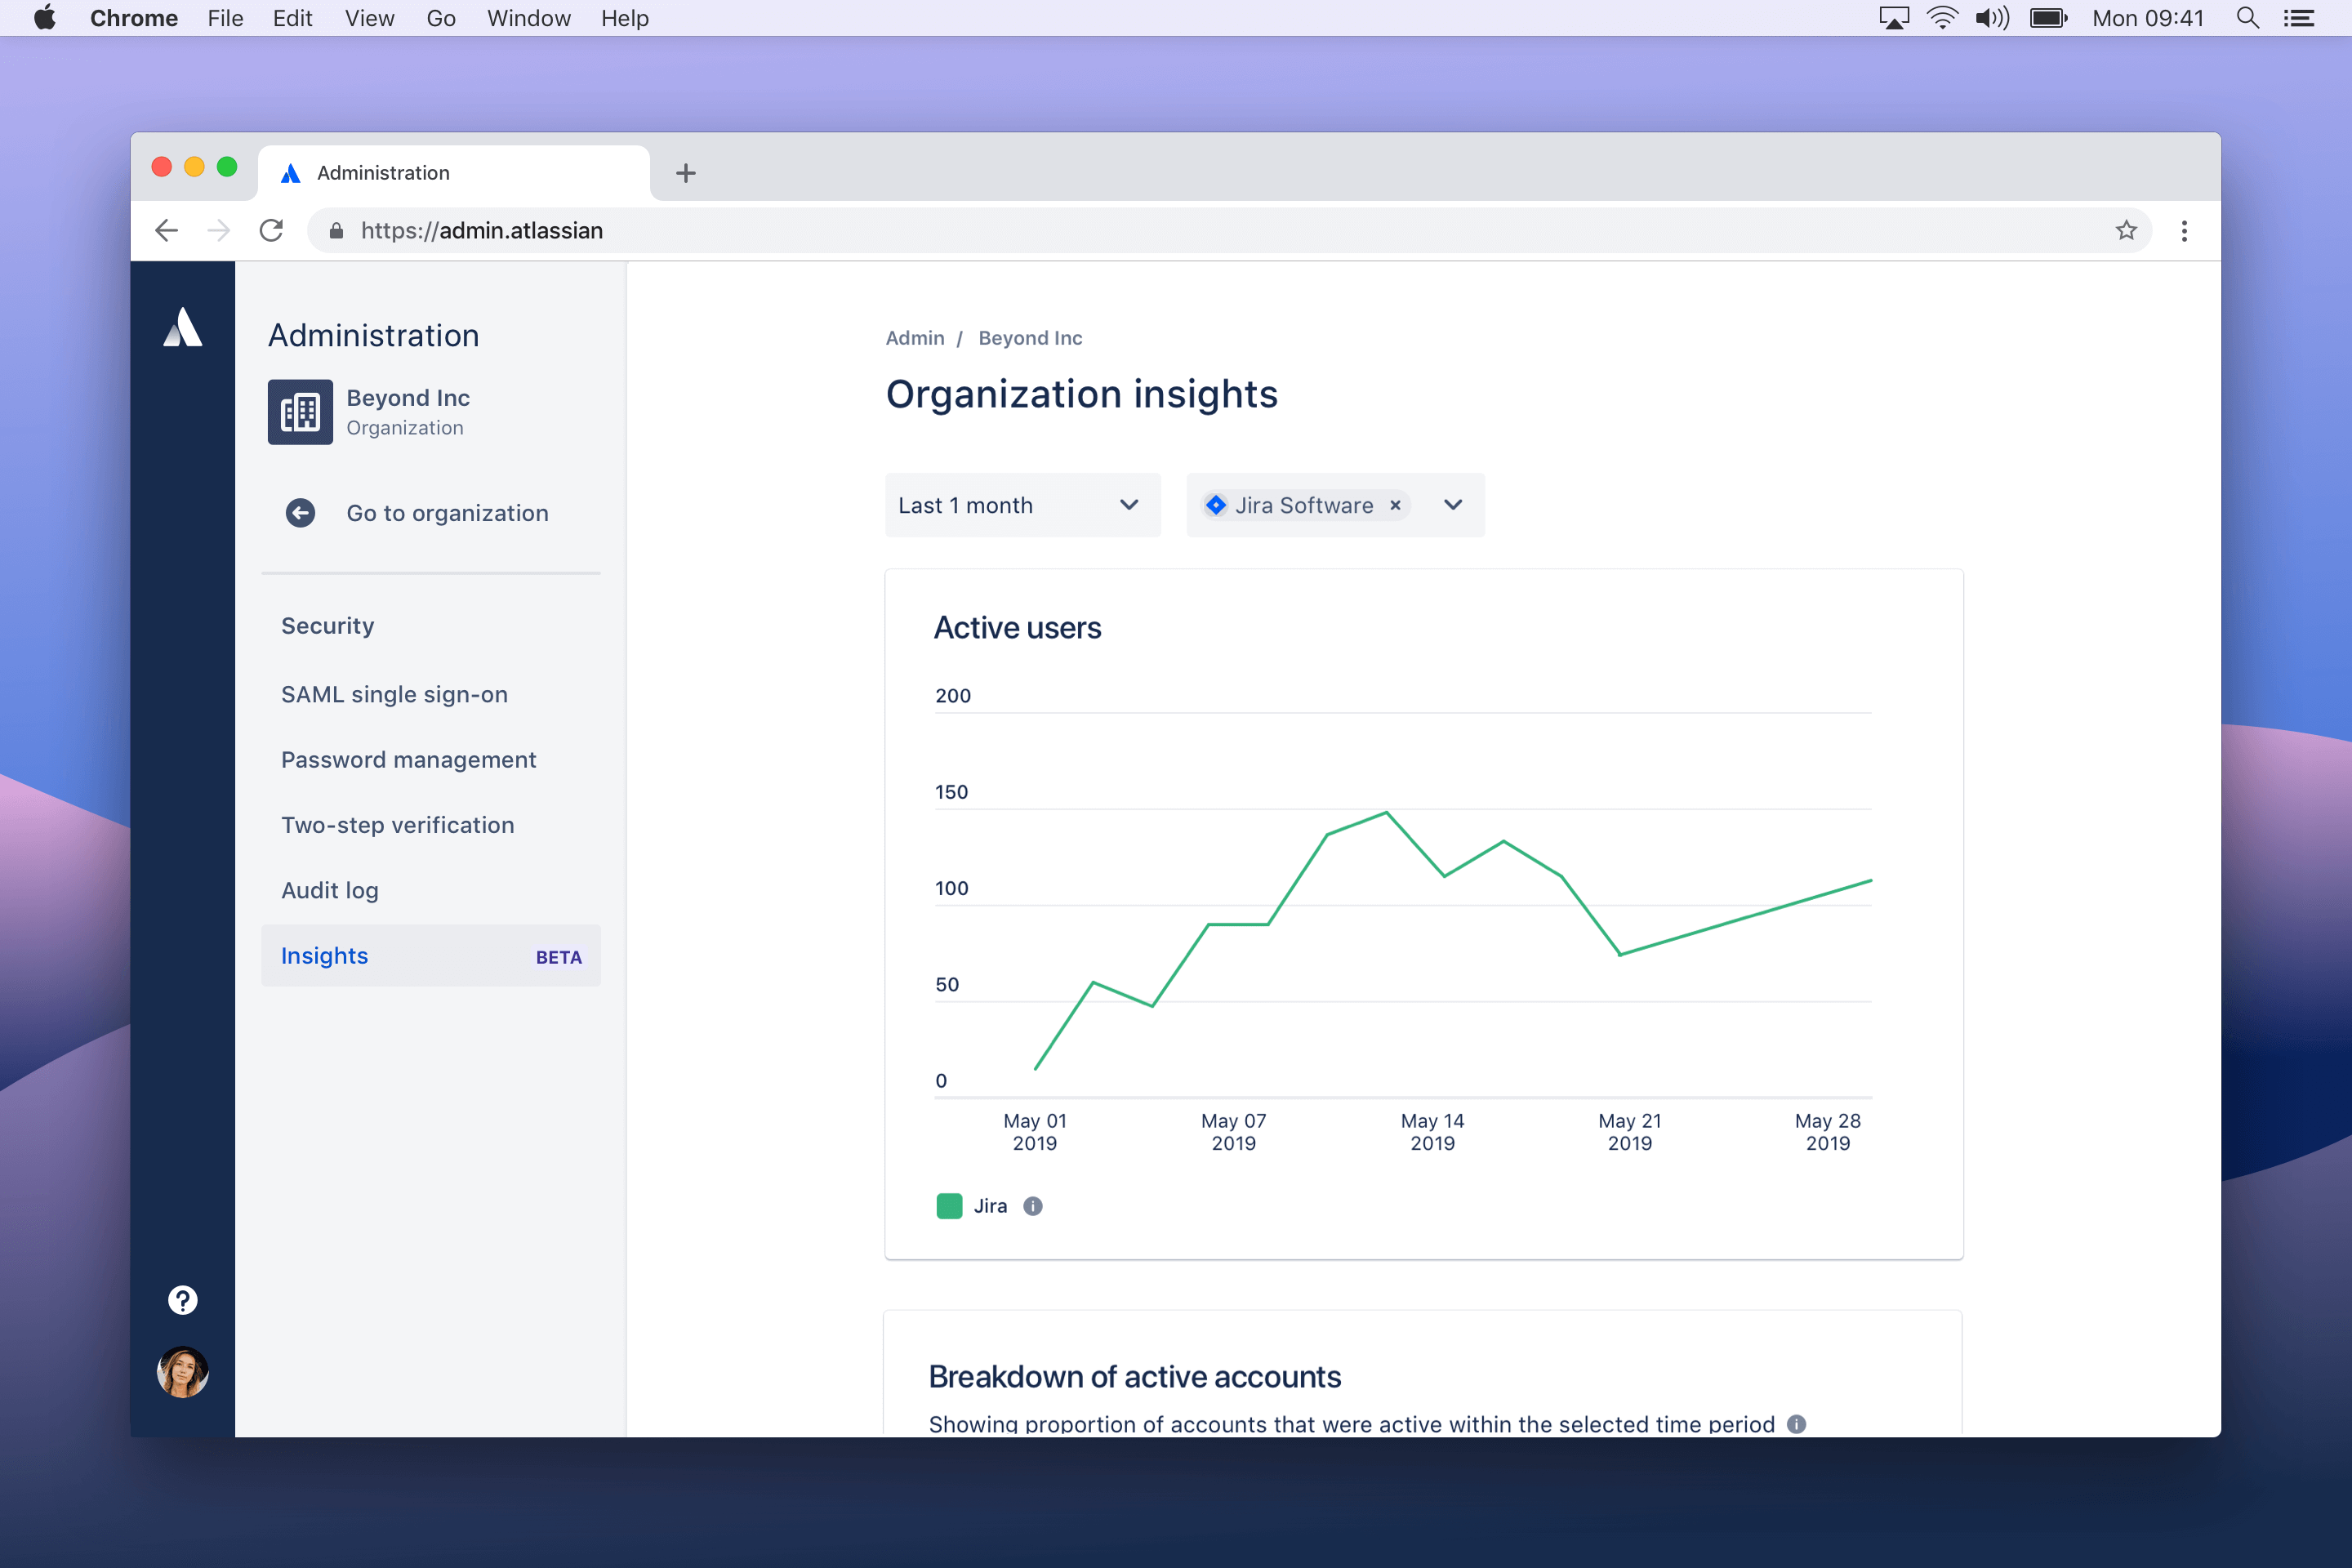 Admin insights in Jira Software Premium